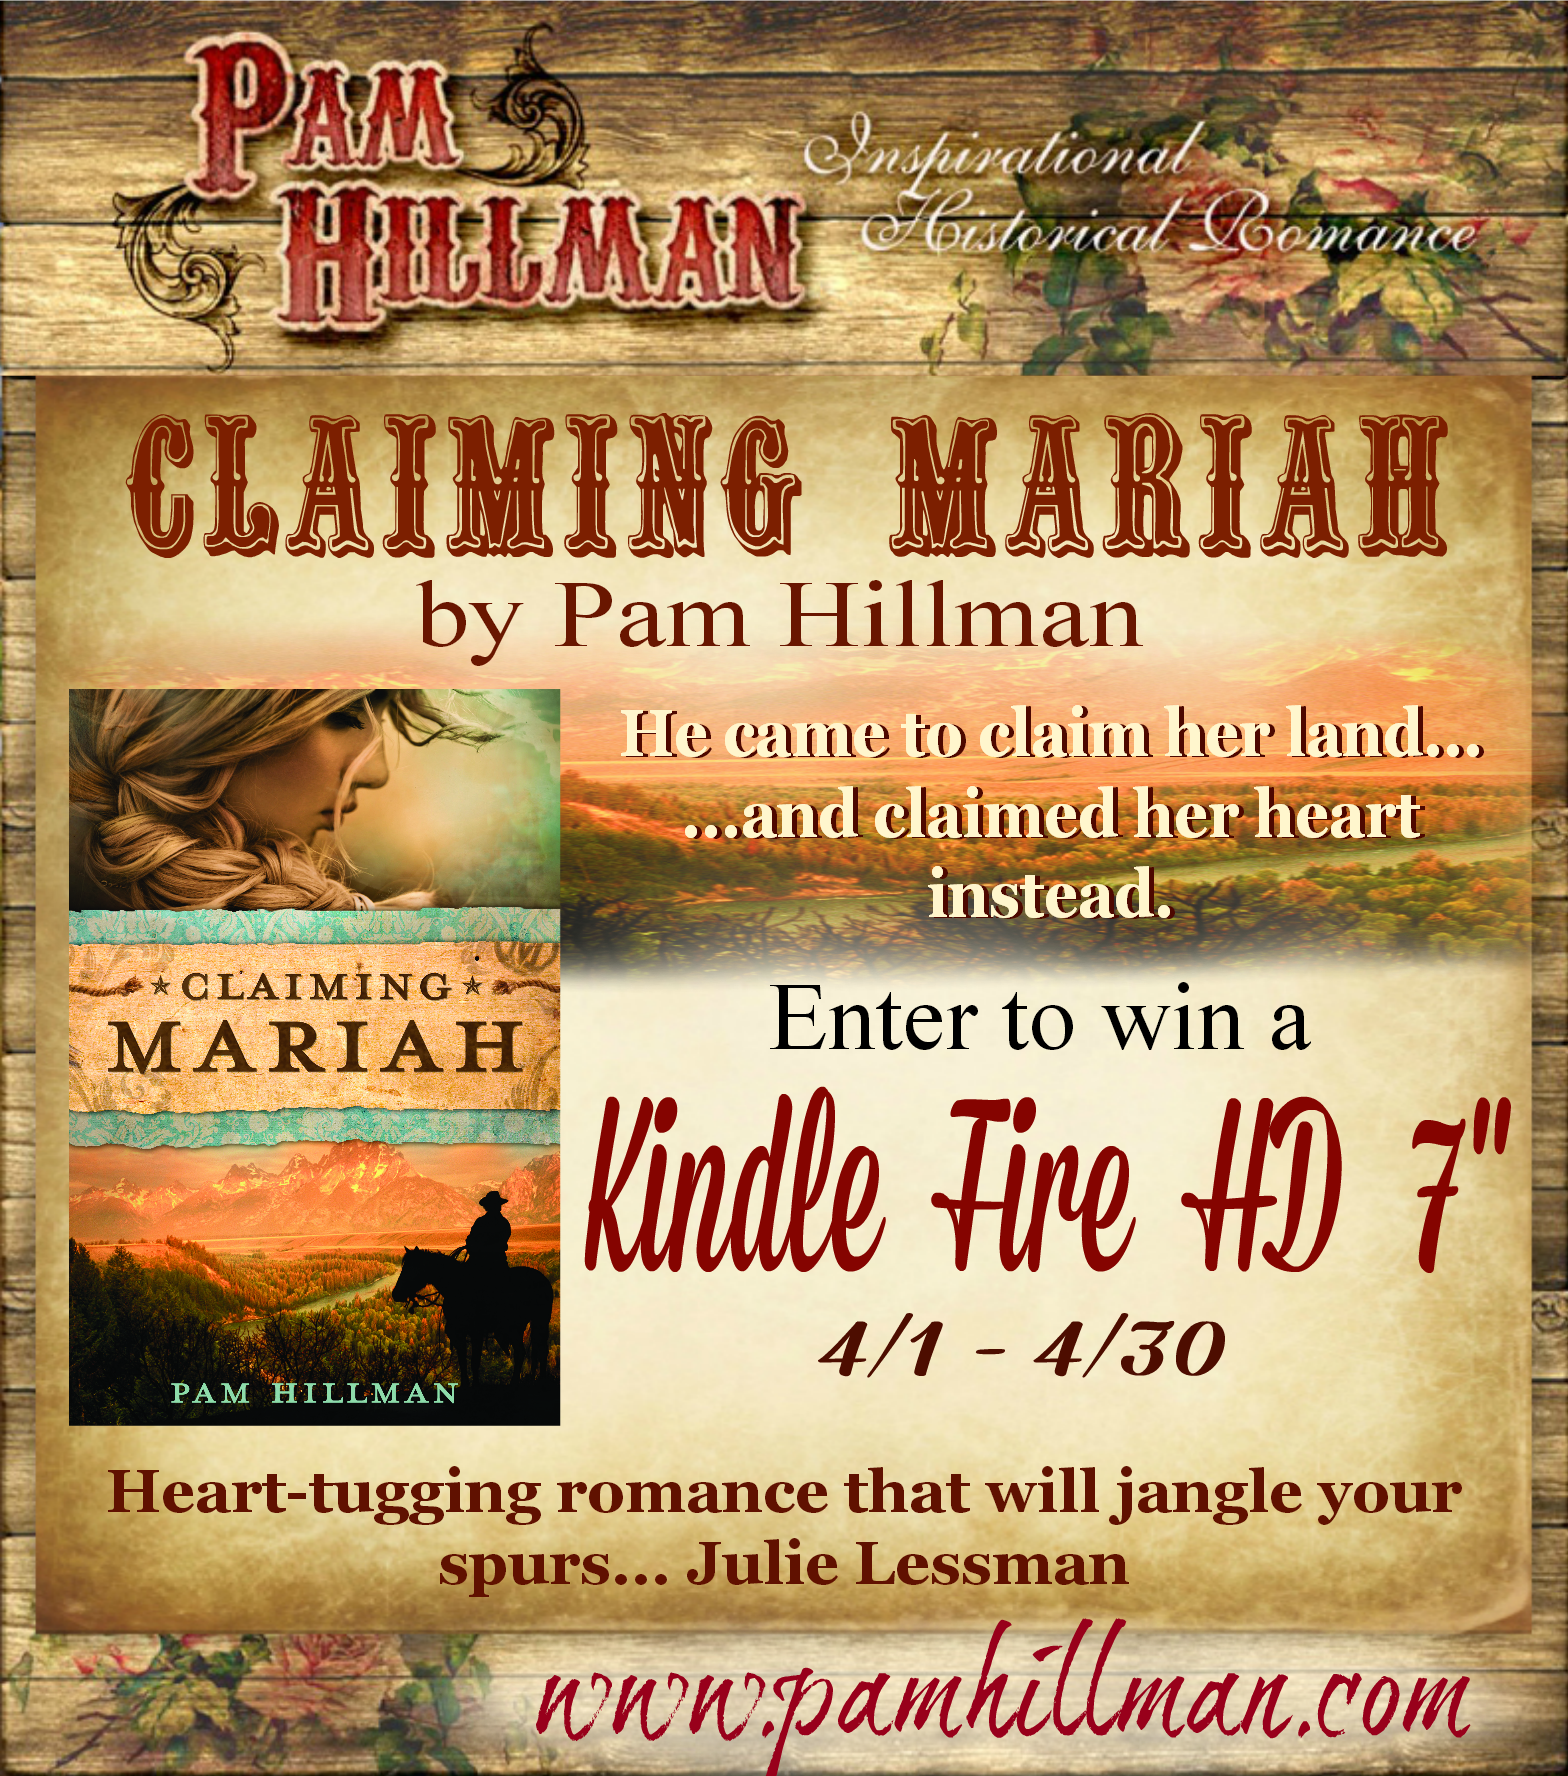 "Enter to win a Kindle Fire HD 7""  April 1-30, 2014 Click on Claiming Mariah"